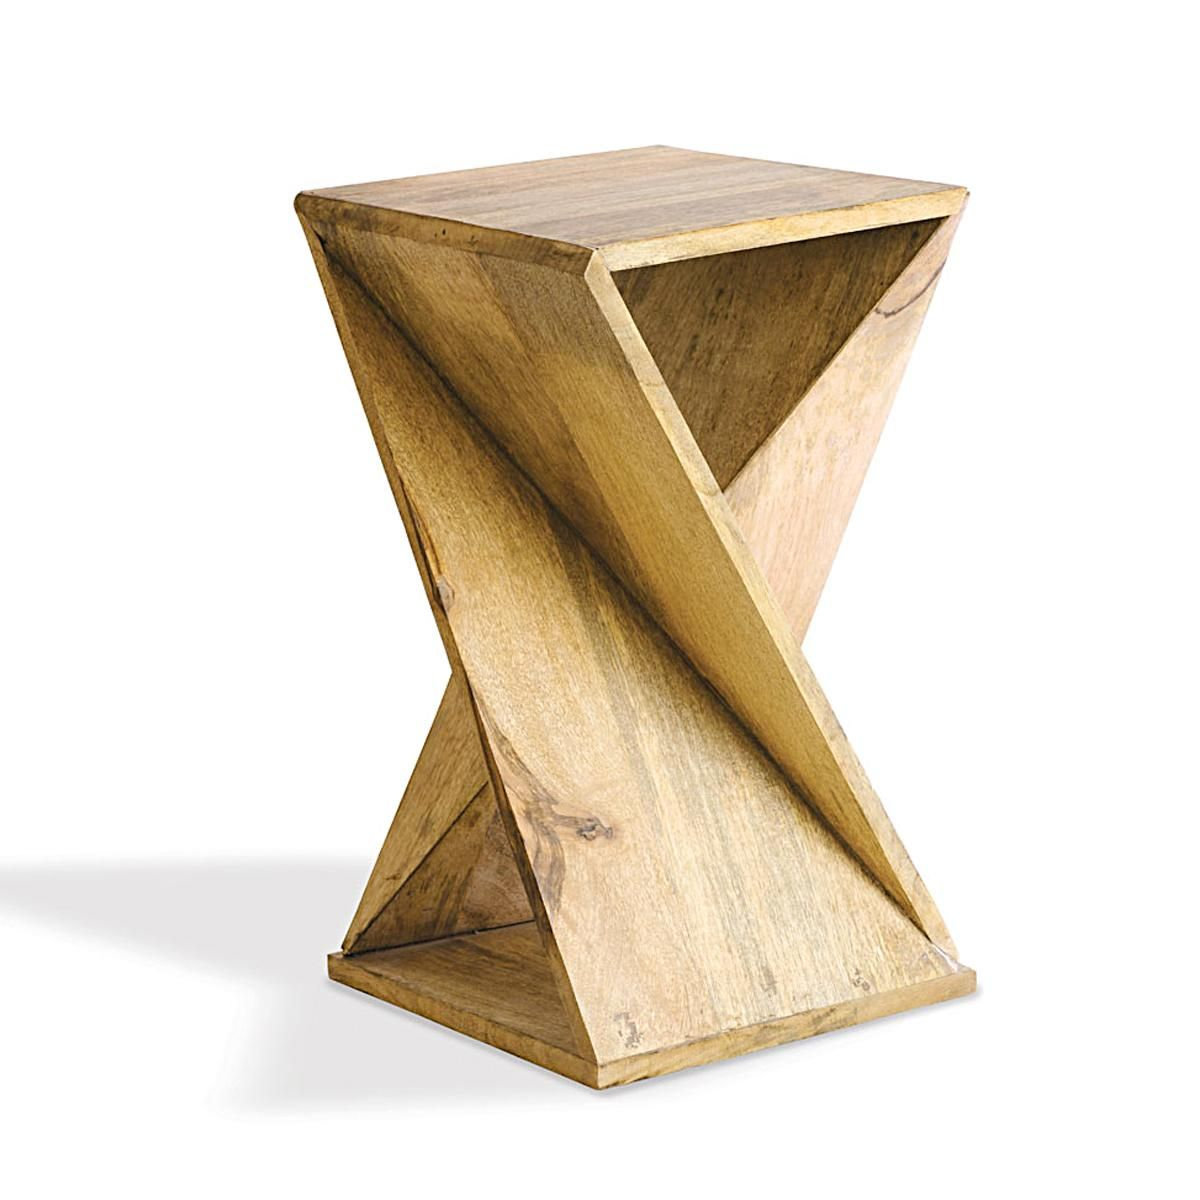 Origami Geometric Solid Wood End Table Bosques Mesa Lateral De